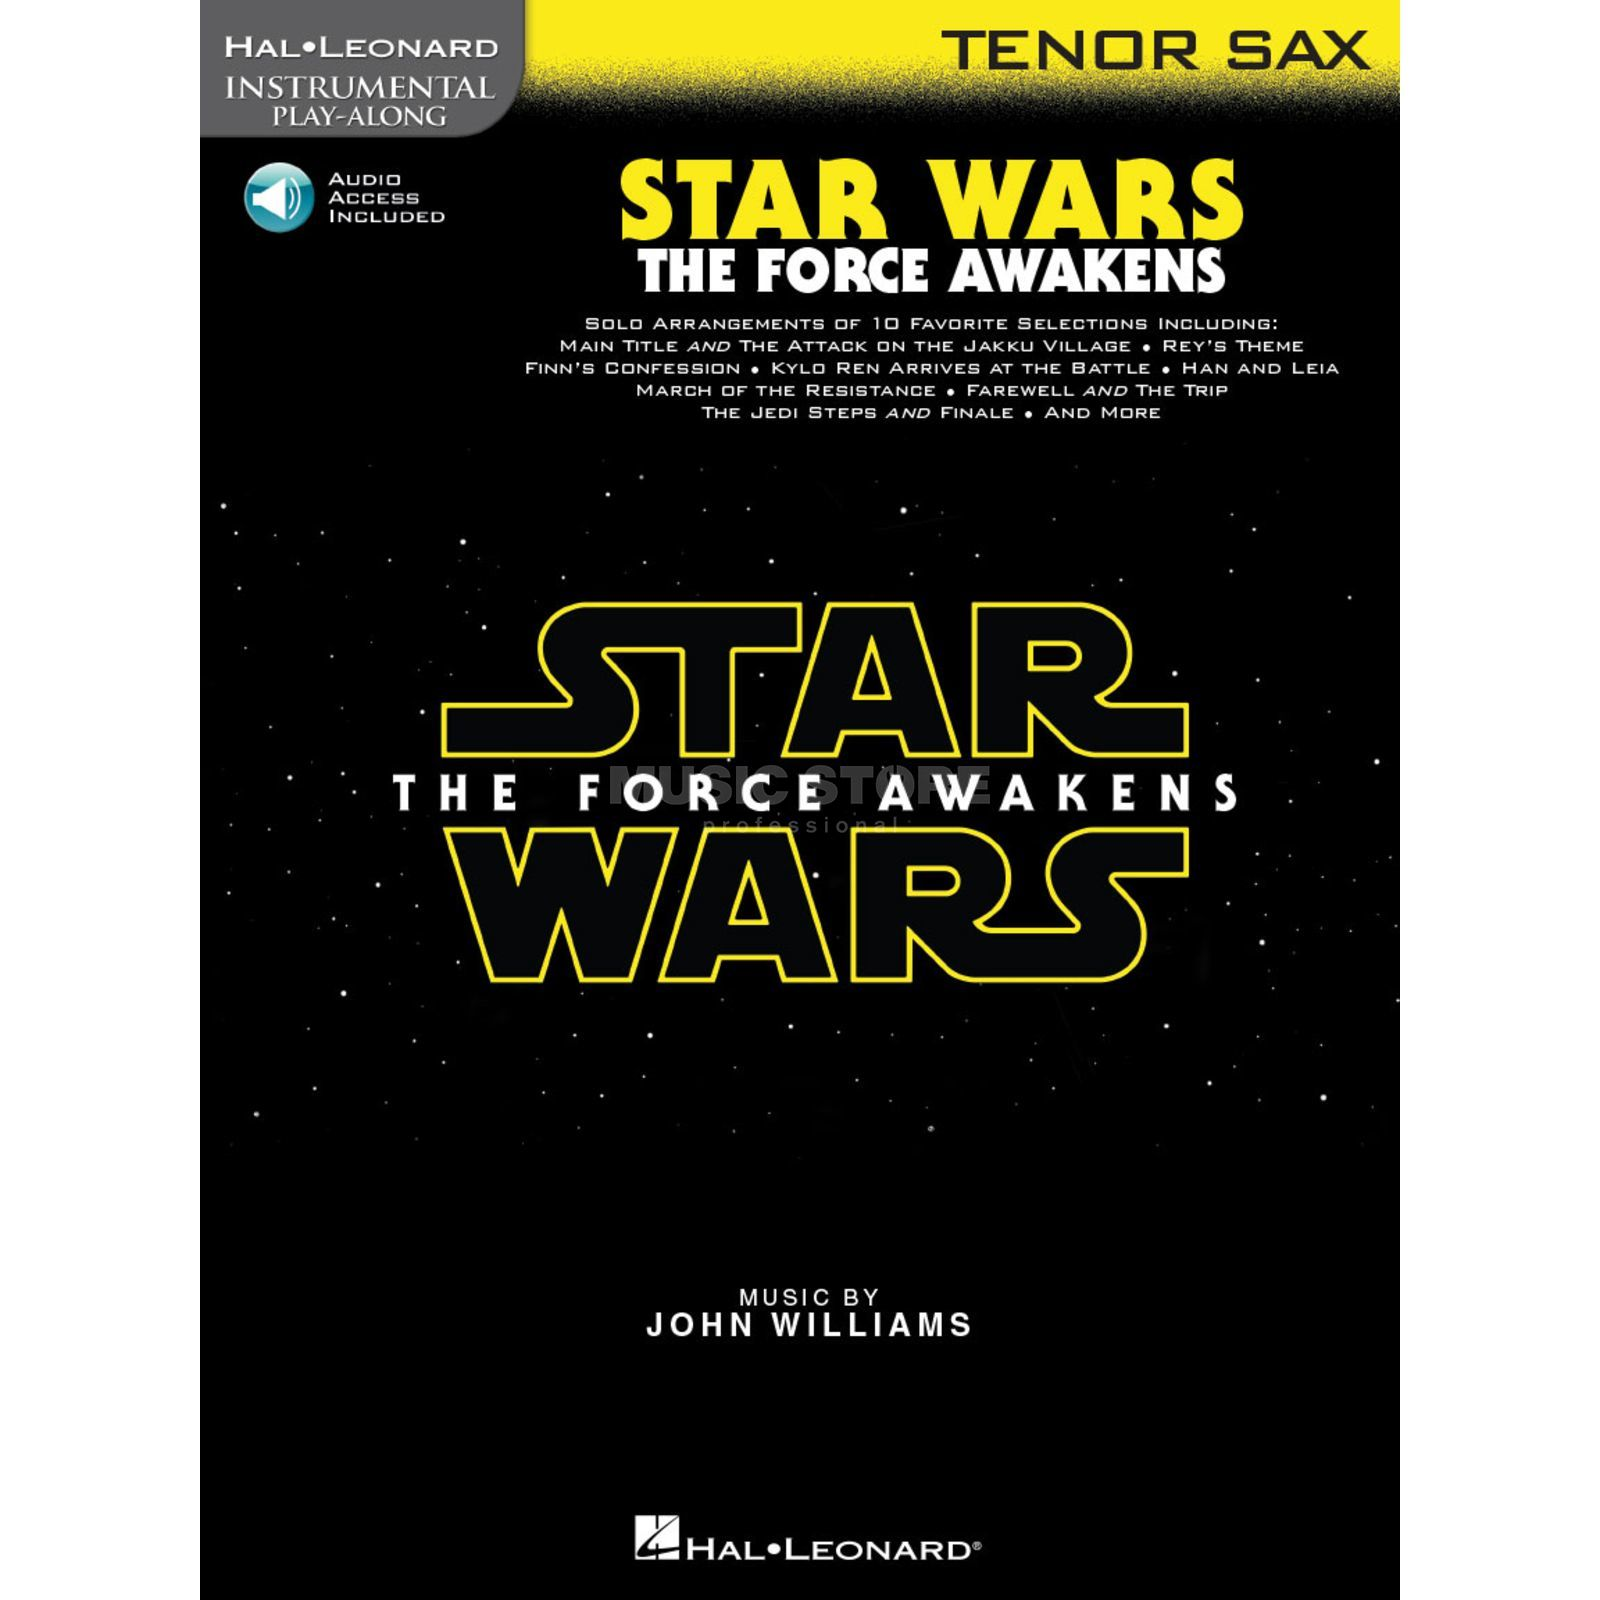 Hal Leonard Instrumental Play-Along: Star Wars - The Force Awakens - Tenor Saxophone Produktbillede